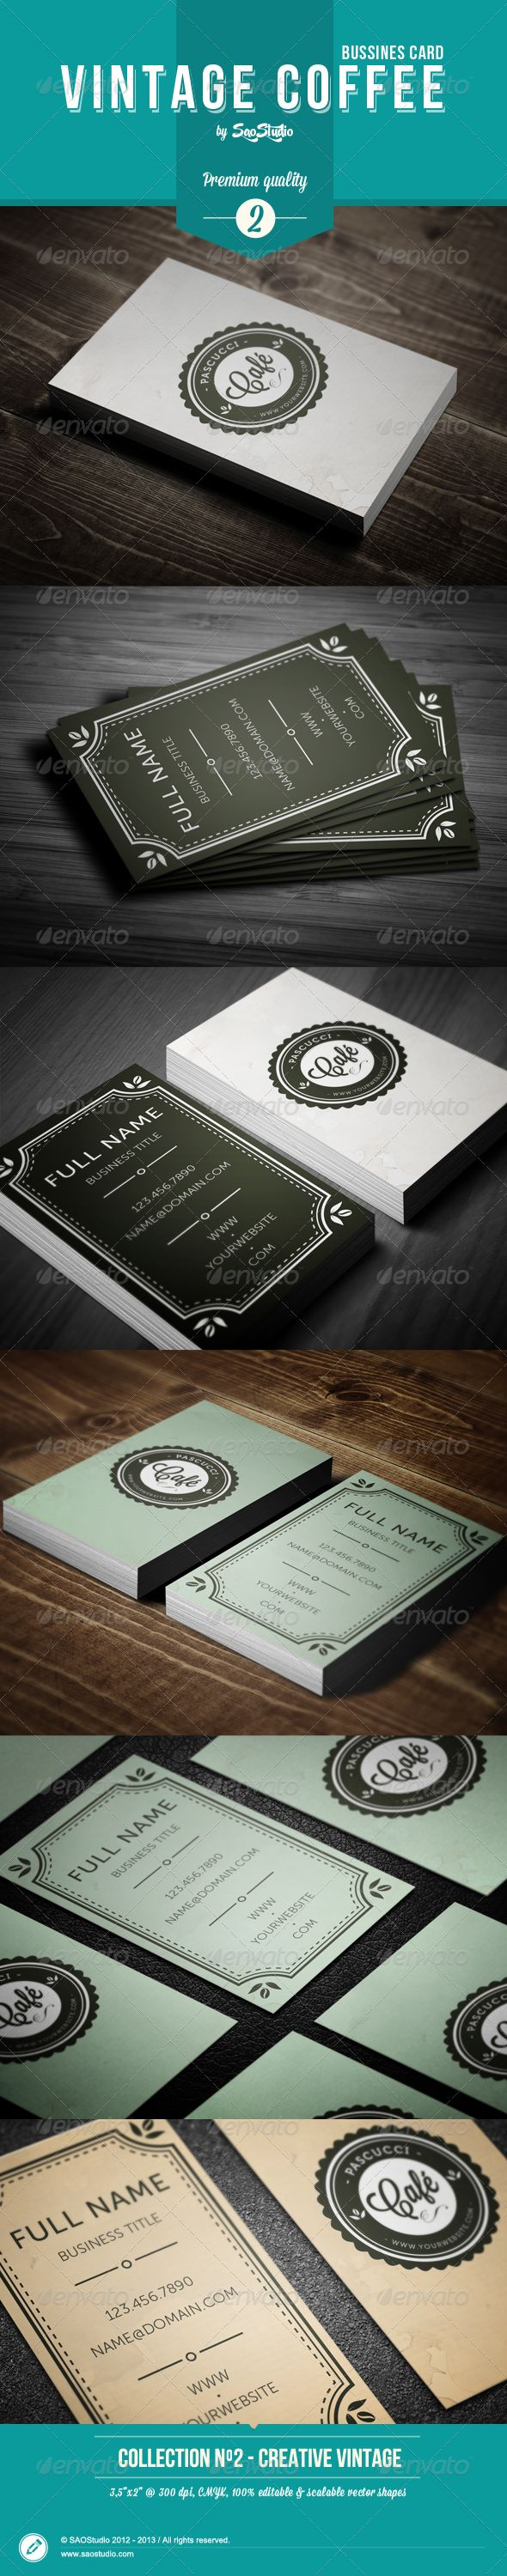 17 best business cards images on pinterest business cards card vintage coffee business card magicingreecefo Choice Image